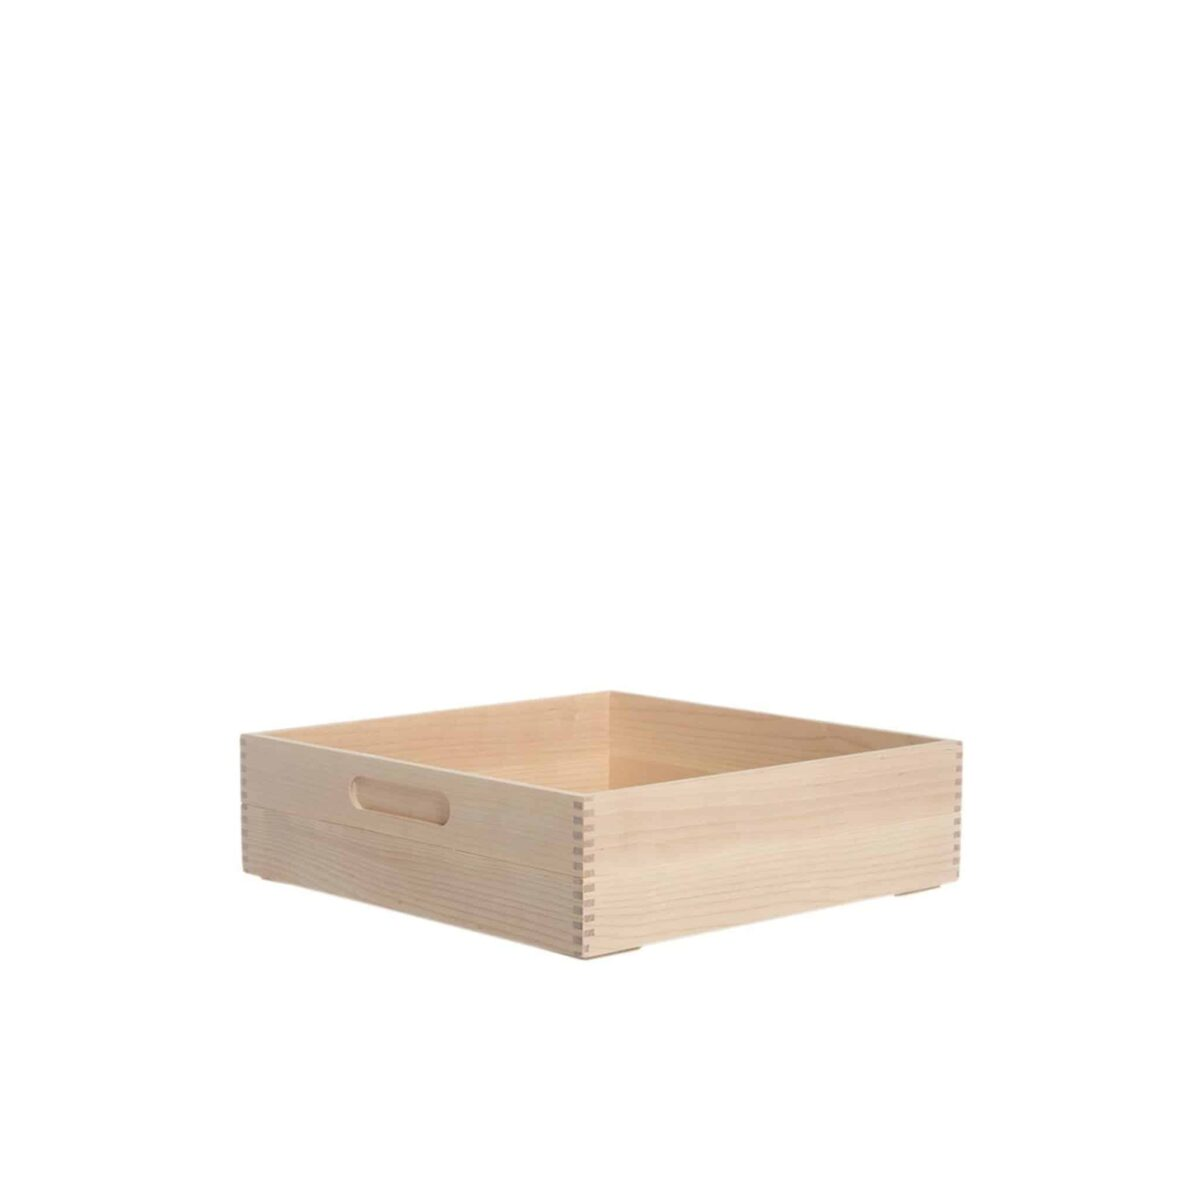 bread-box-lid-small-1